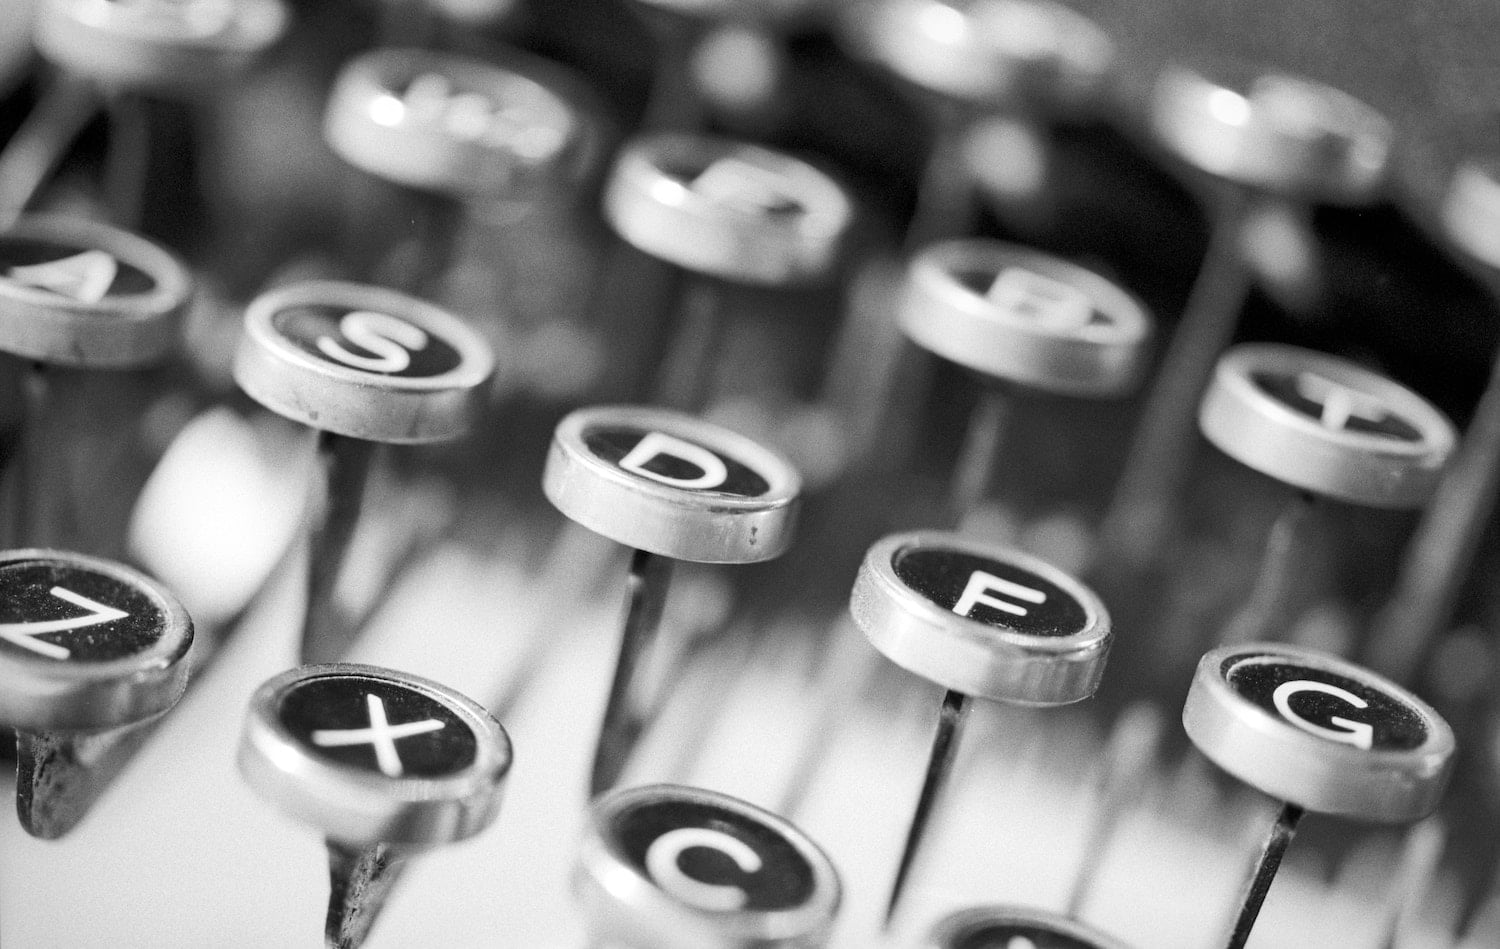 Typewriter Keys by Peter Lewicki c:o Unsplash